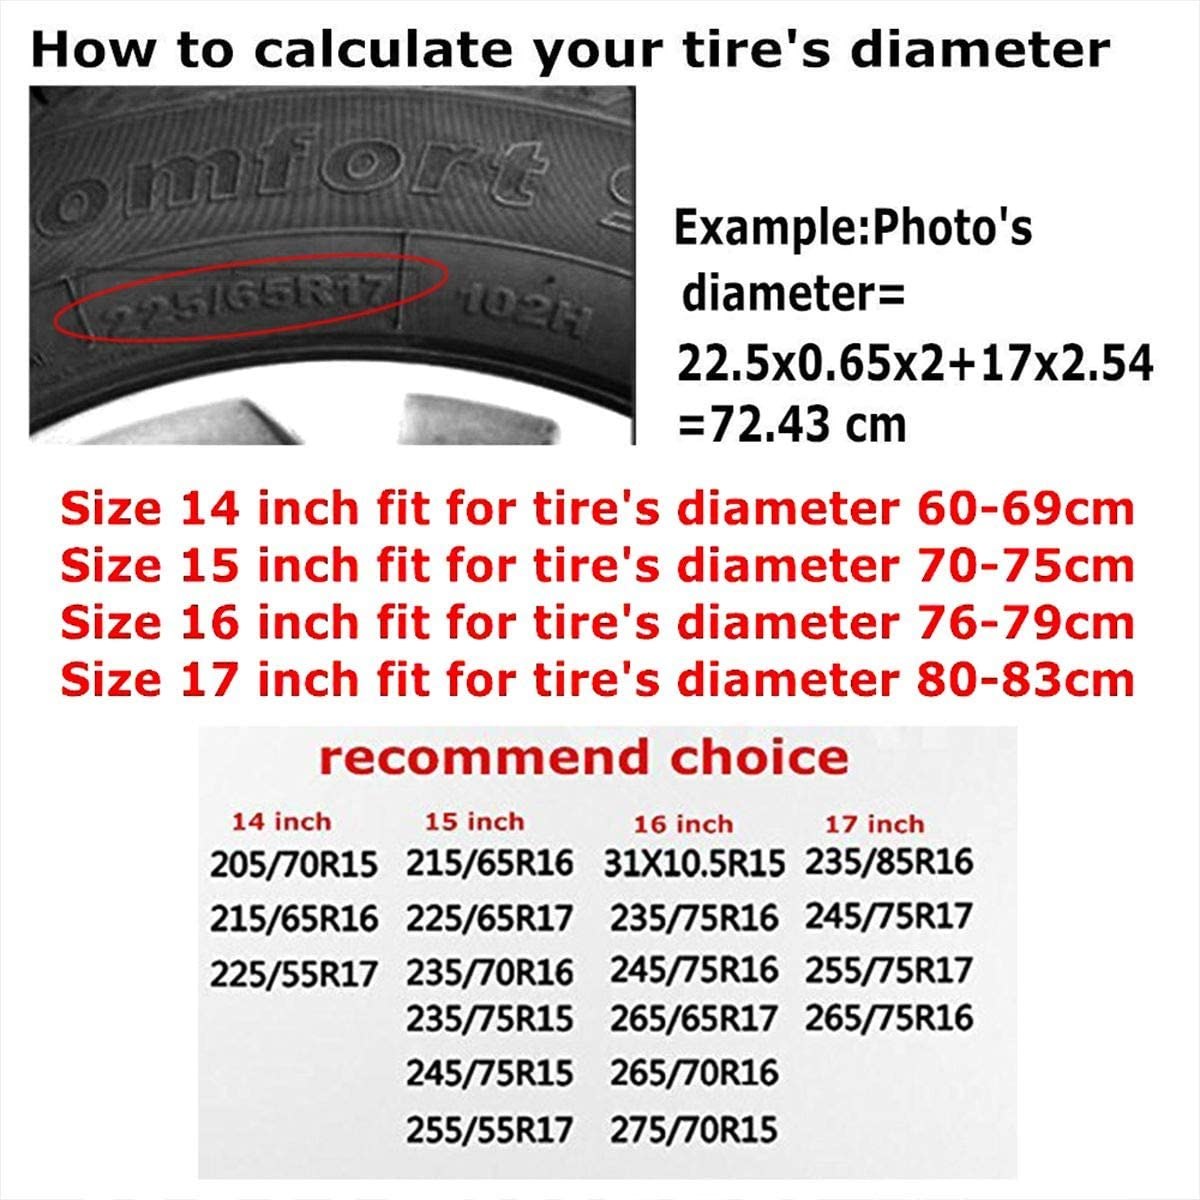 (Tire Diameters 23.5-32.5inch ) Halloween Mic-hael My-ers Spare Tire Cover,Polyester Universal Dust-Proof Waterproof Wheel Covers for Jeep Trailer RV SUV Truck and Many Vehicles 14 15 16 17